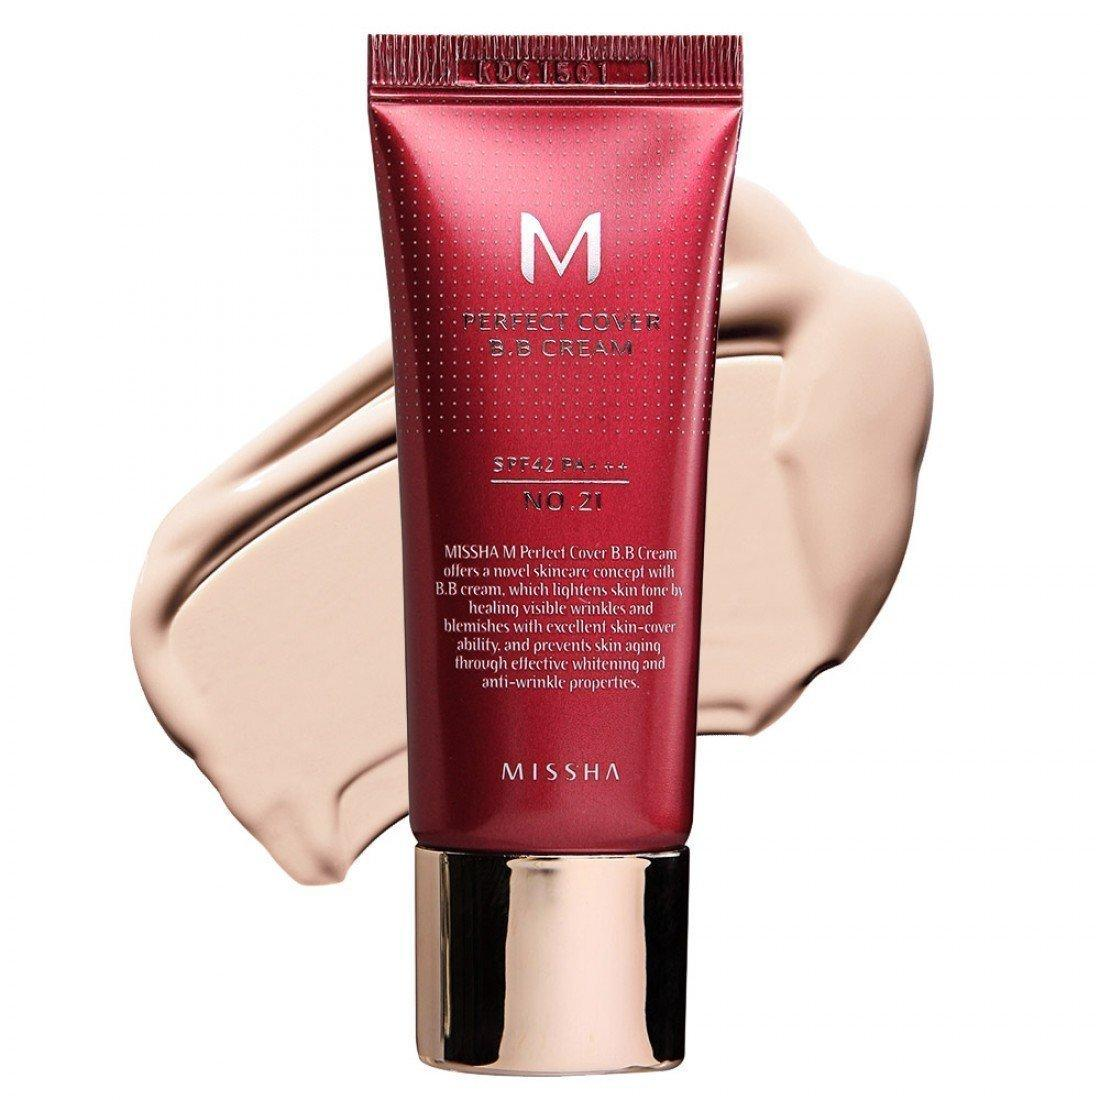 ВВ крем M Perfect Cover BB Cream (No.13) 20ml